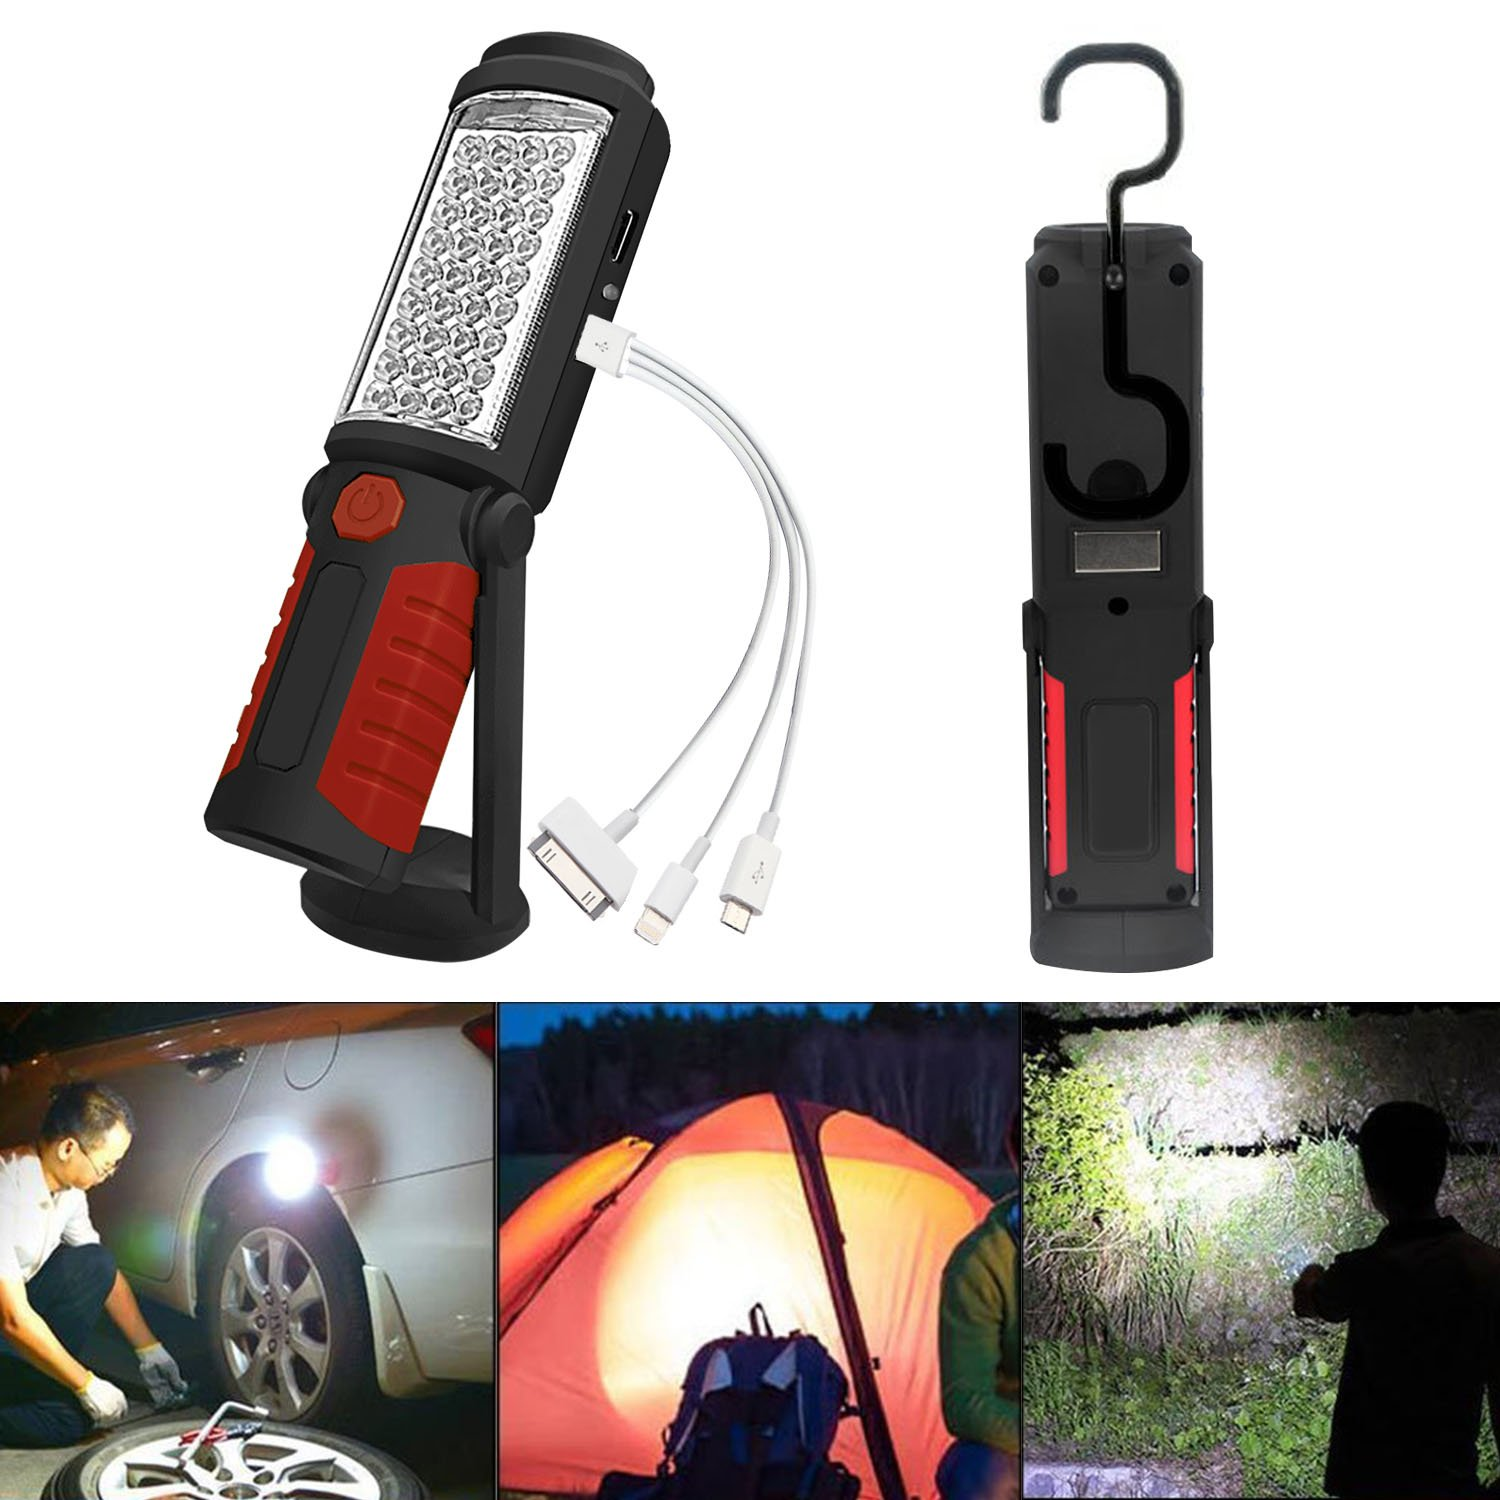 SunTop Led Work Light,Rechargeable LED Portable Inspection Lamp Torch Camping Light with Magnetic Clip, Household Workshop Automobile Camping Emergency Use